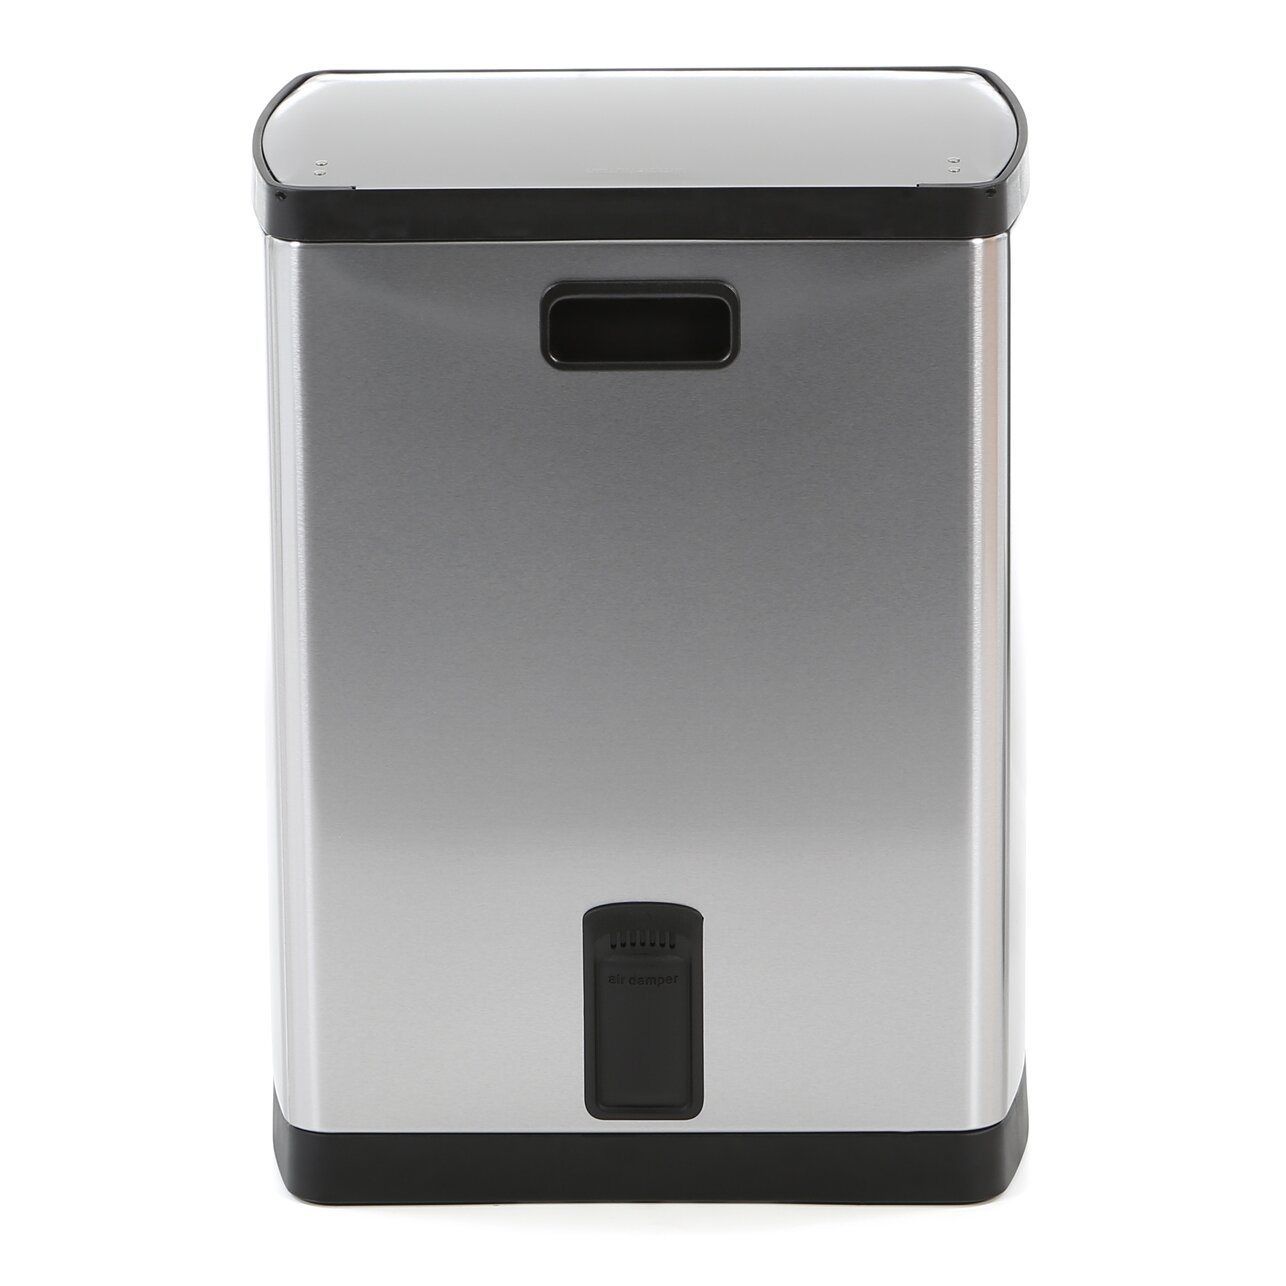 simplehuman 8 gallon step on stainless steel trash can reviews. Black Bedroom Furniture Sets. Home Design Ideas